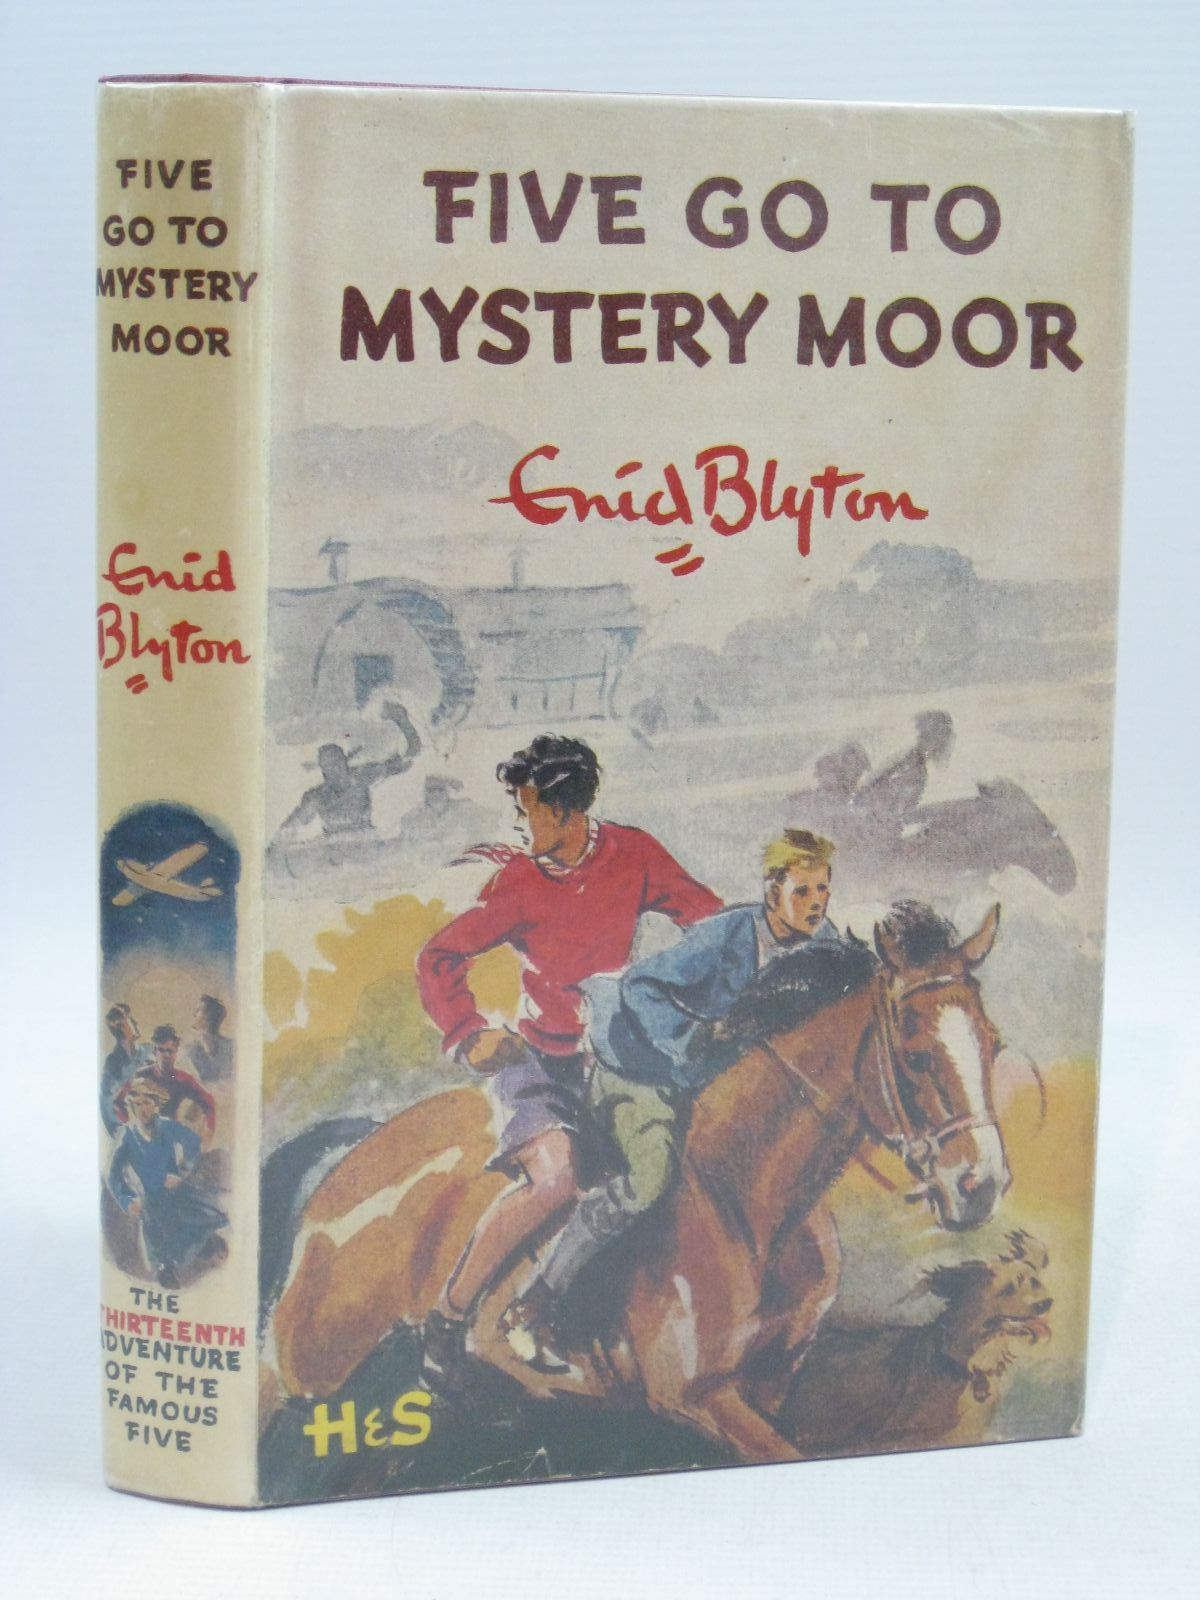 Cover of FIVE GO TO MYSTERY MOOR by Enid Blyton